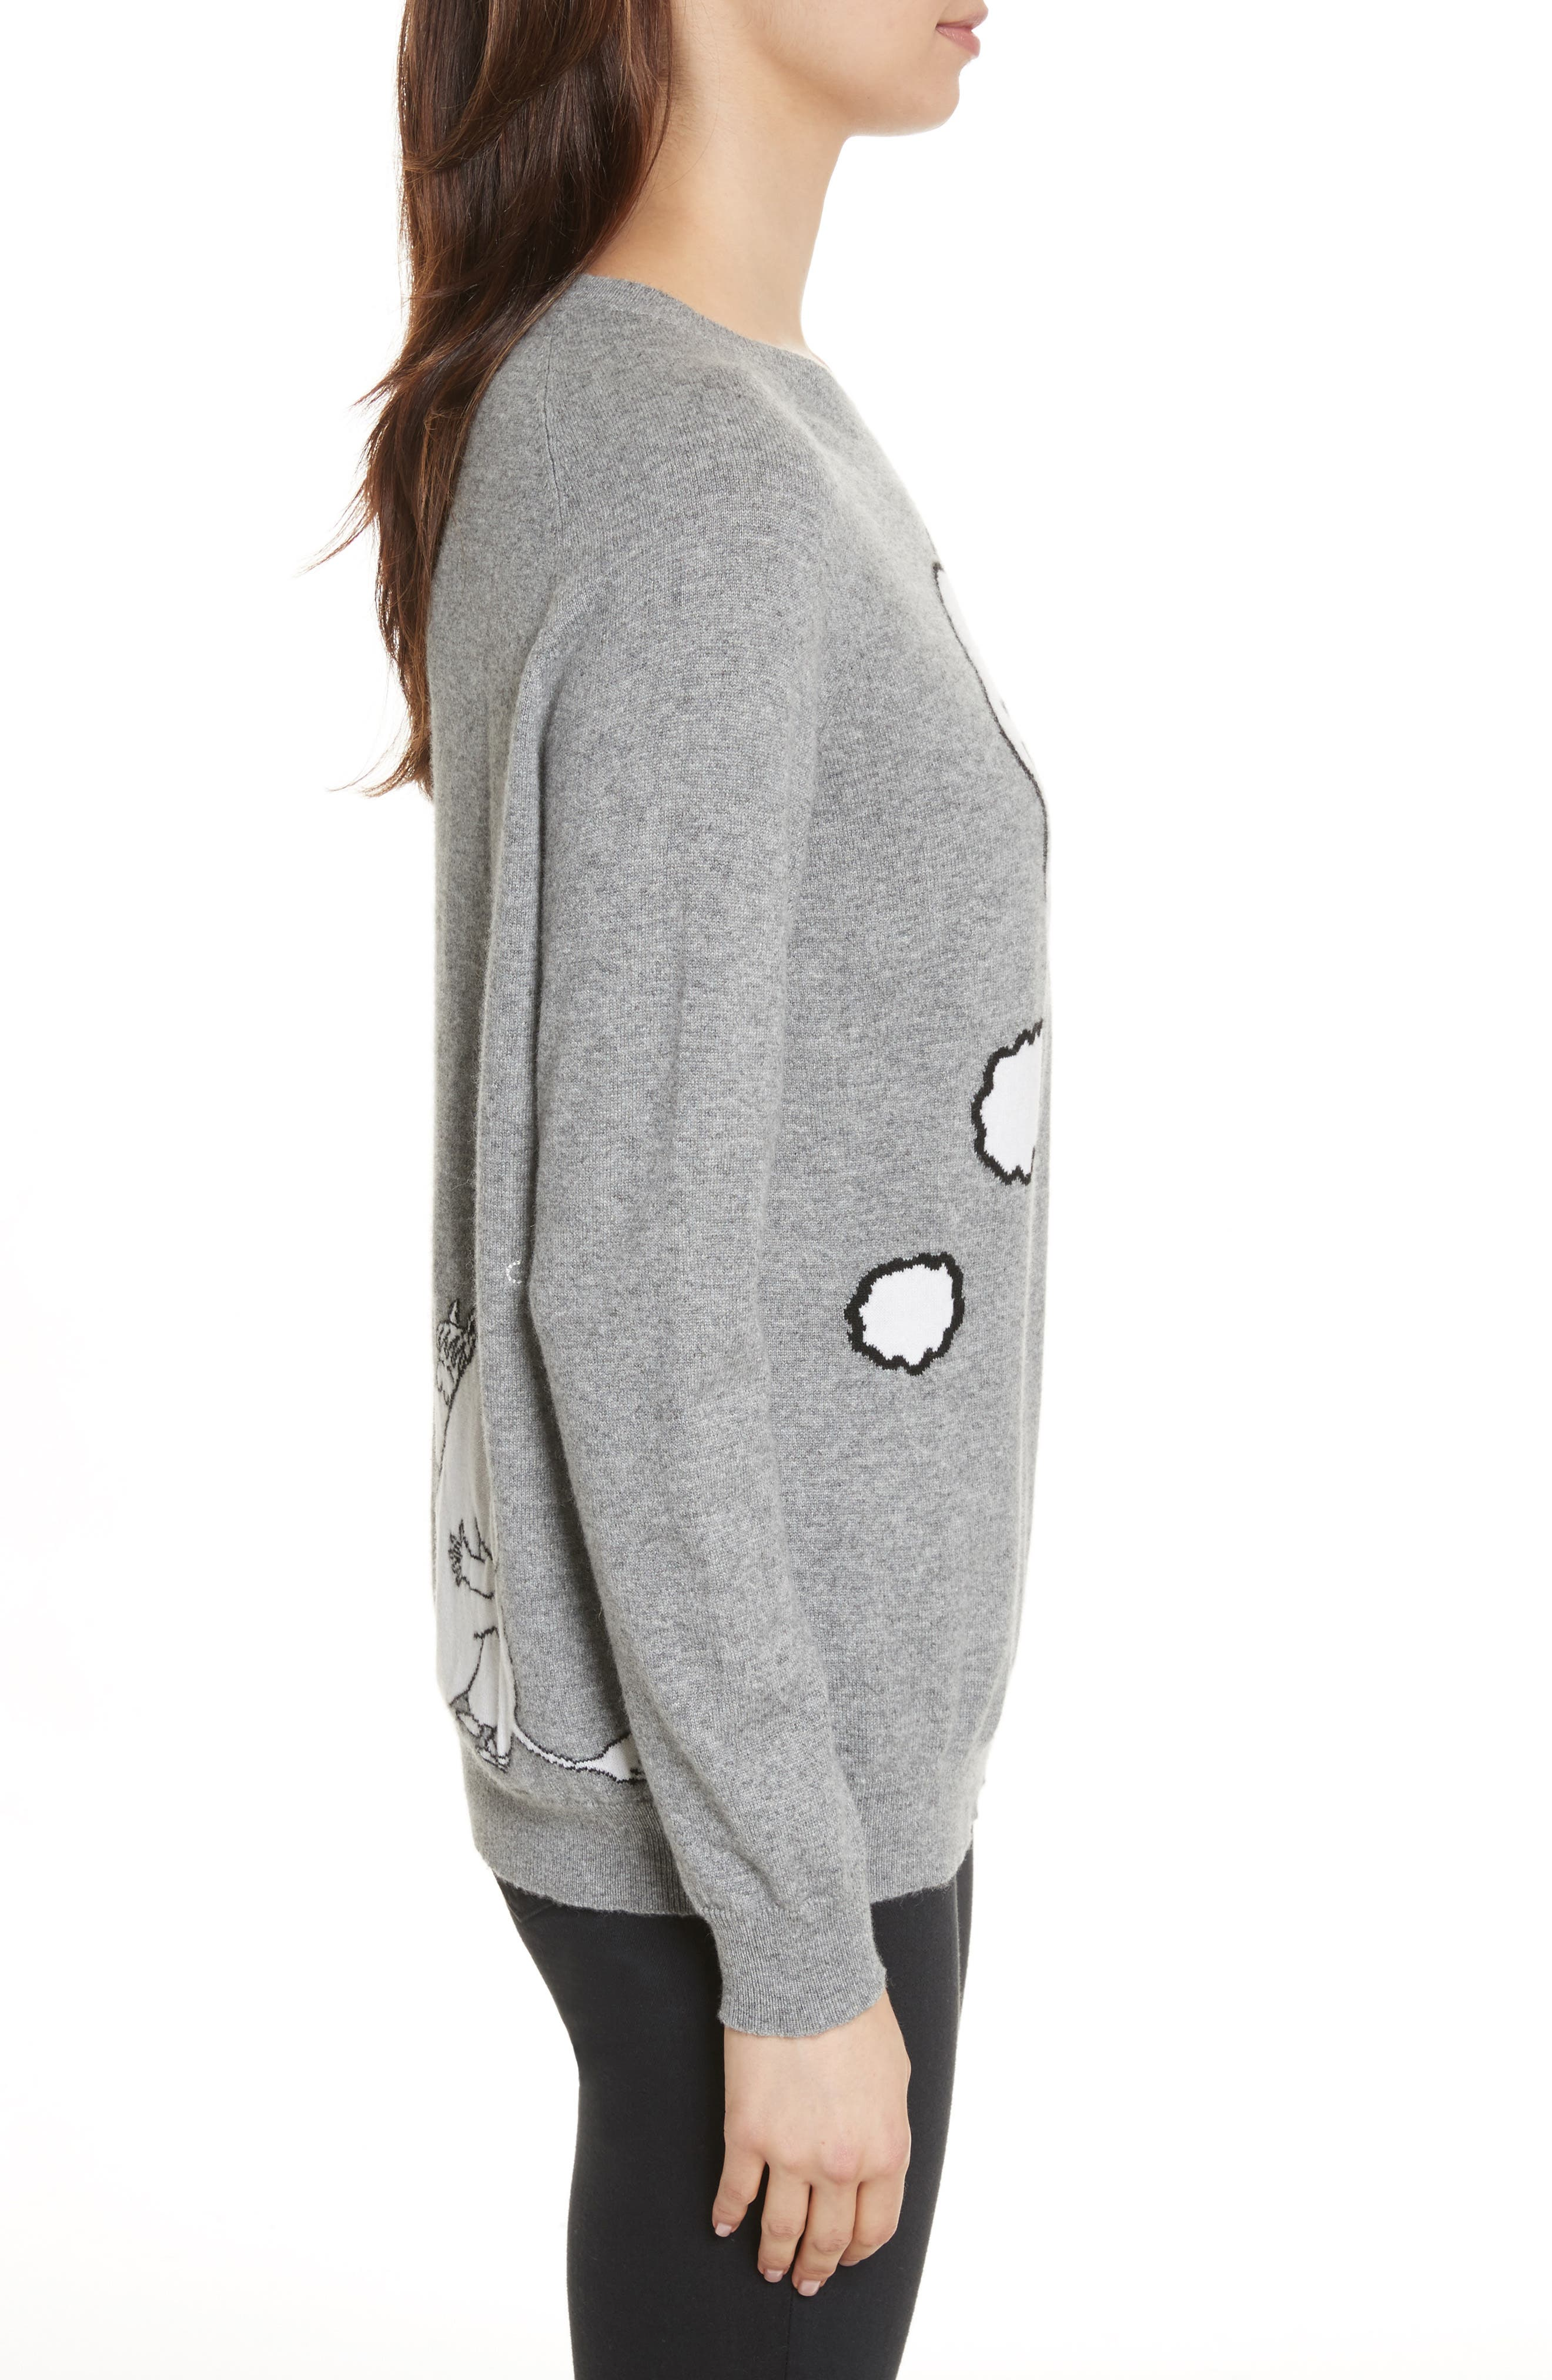 CHINTI & PARKER Just Imagine Moomin Cashmere Sweater,                             Alternate thumbnail 3, color,                             Grey